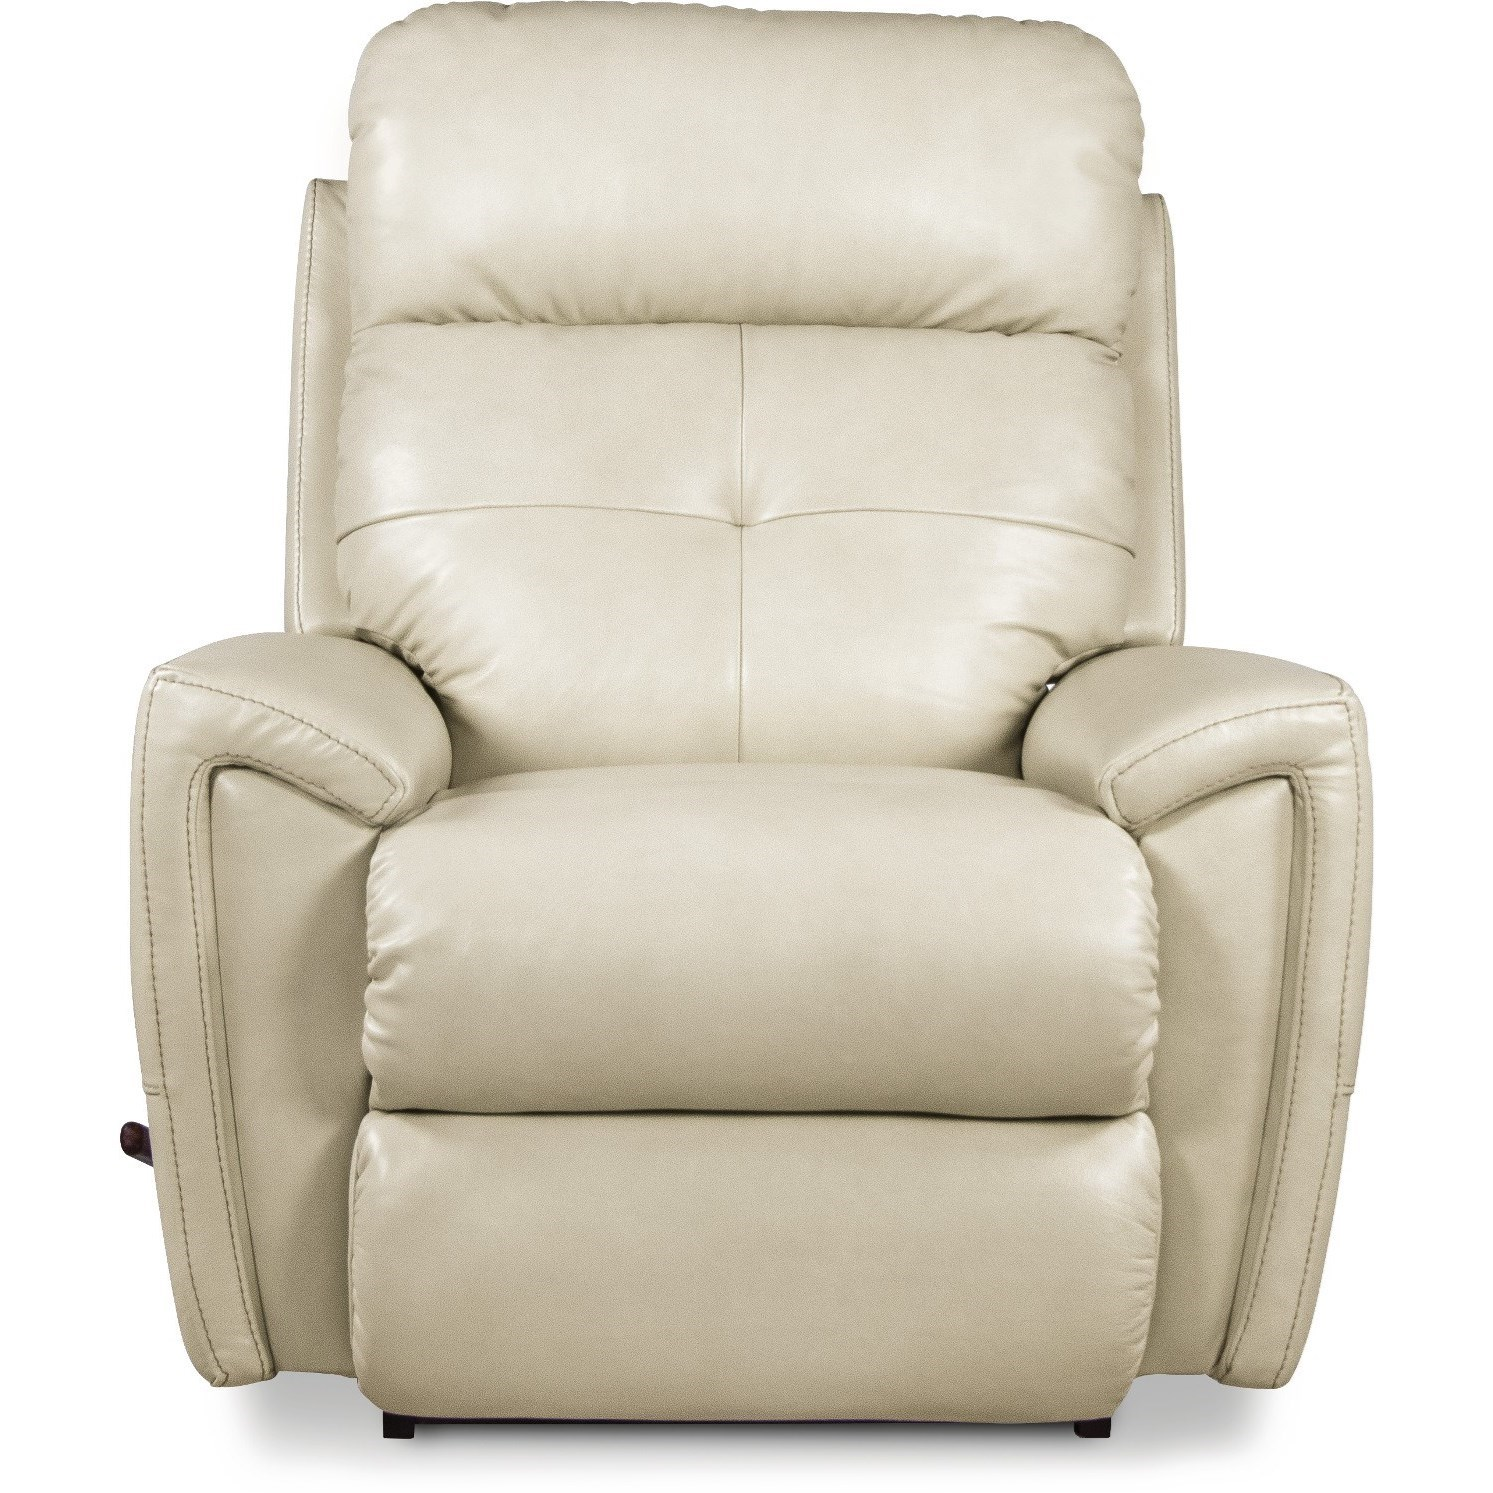 Contemporary PowerReclineXR Rocker Recliner with USB Charging Port